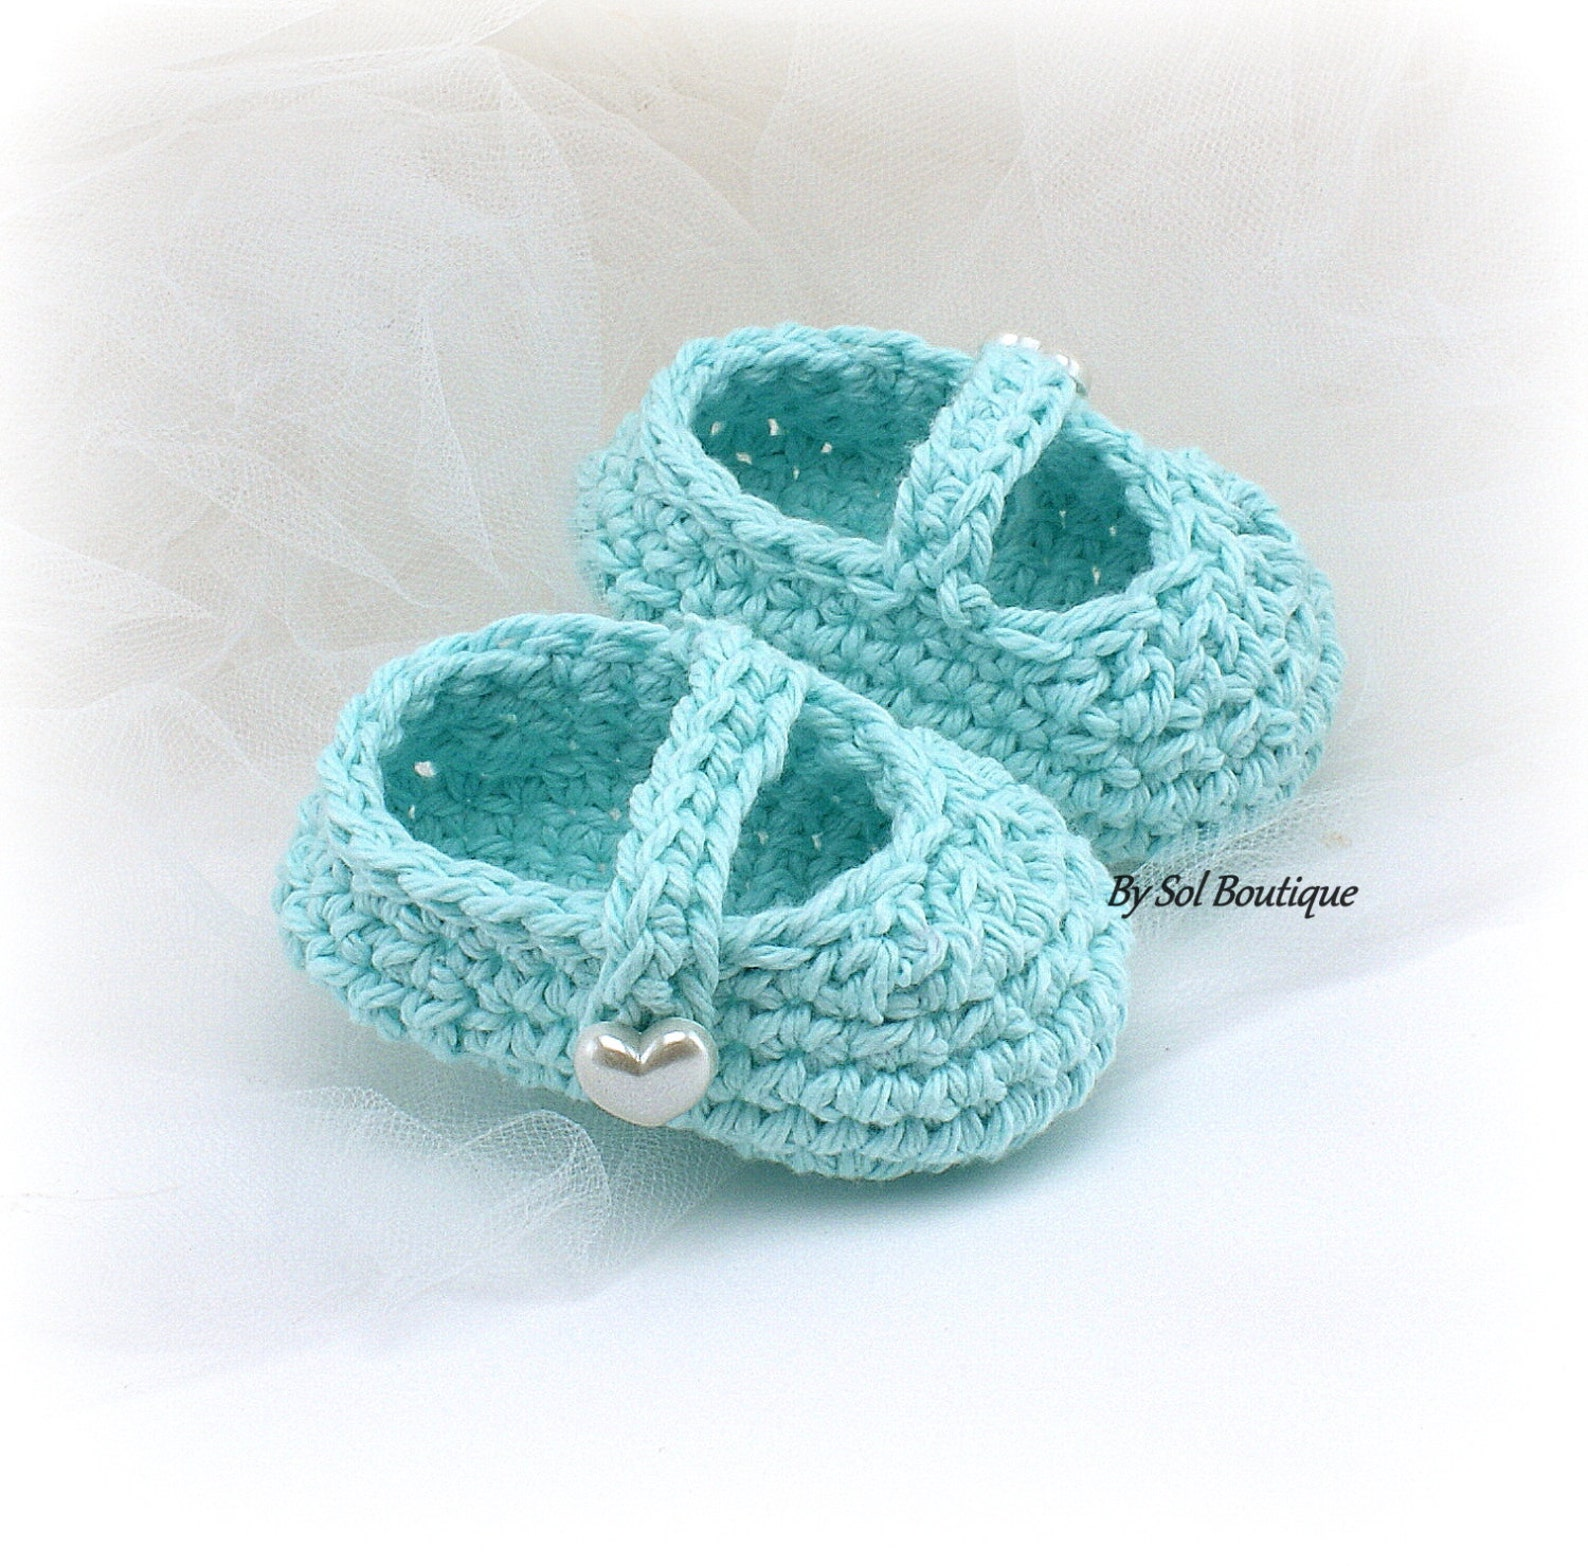 girl baby shoes,new born shoes,aqua,turquoise,mint,crochet shoes,photo prop,baby ballet shoes,booties,baby shower,gift for baby,